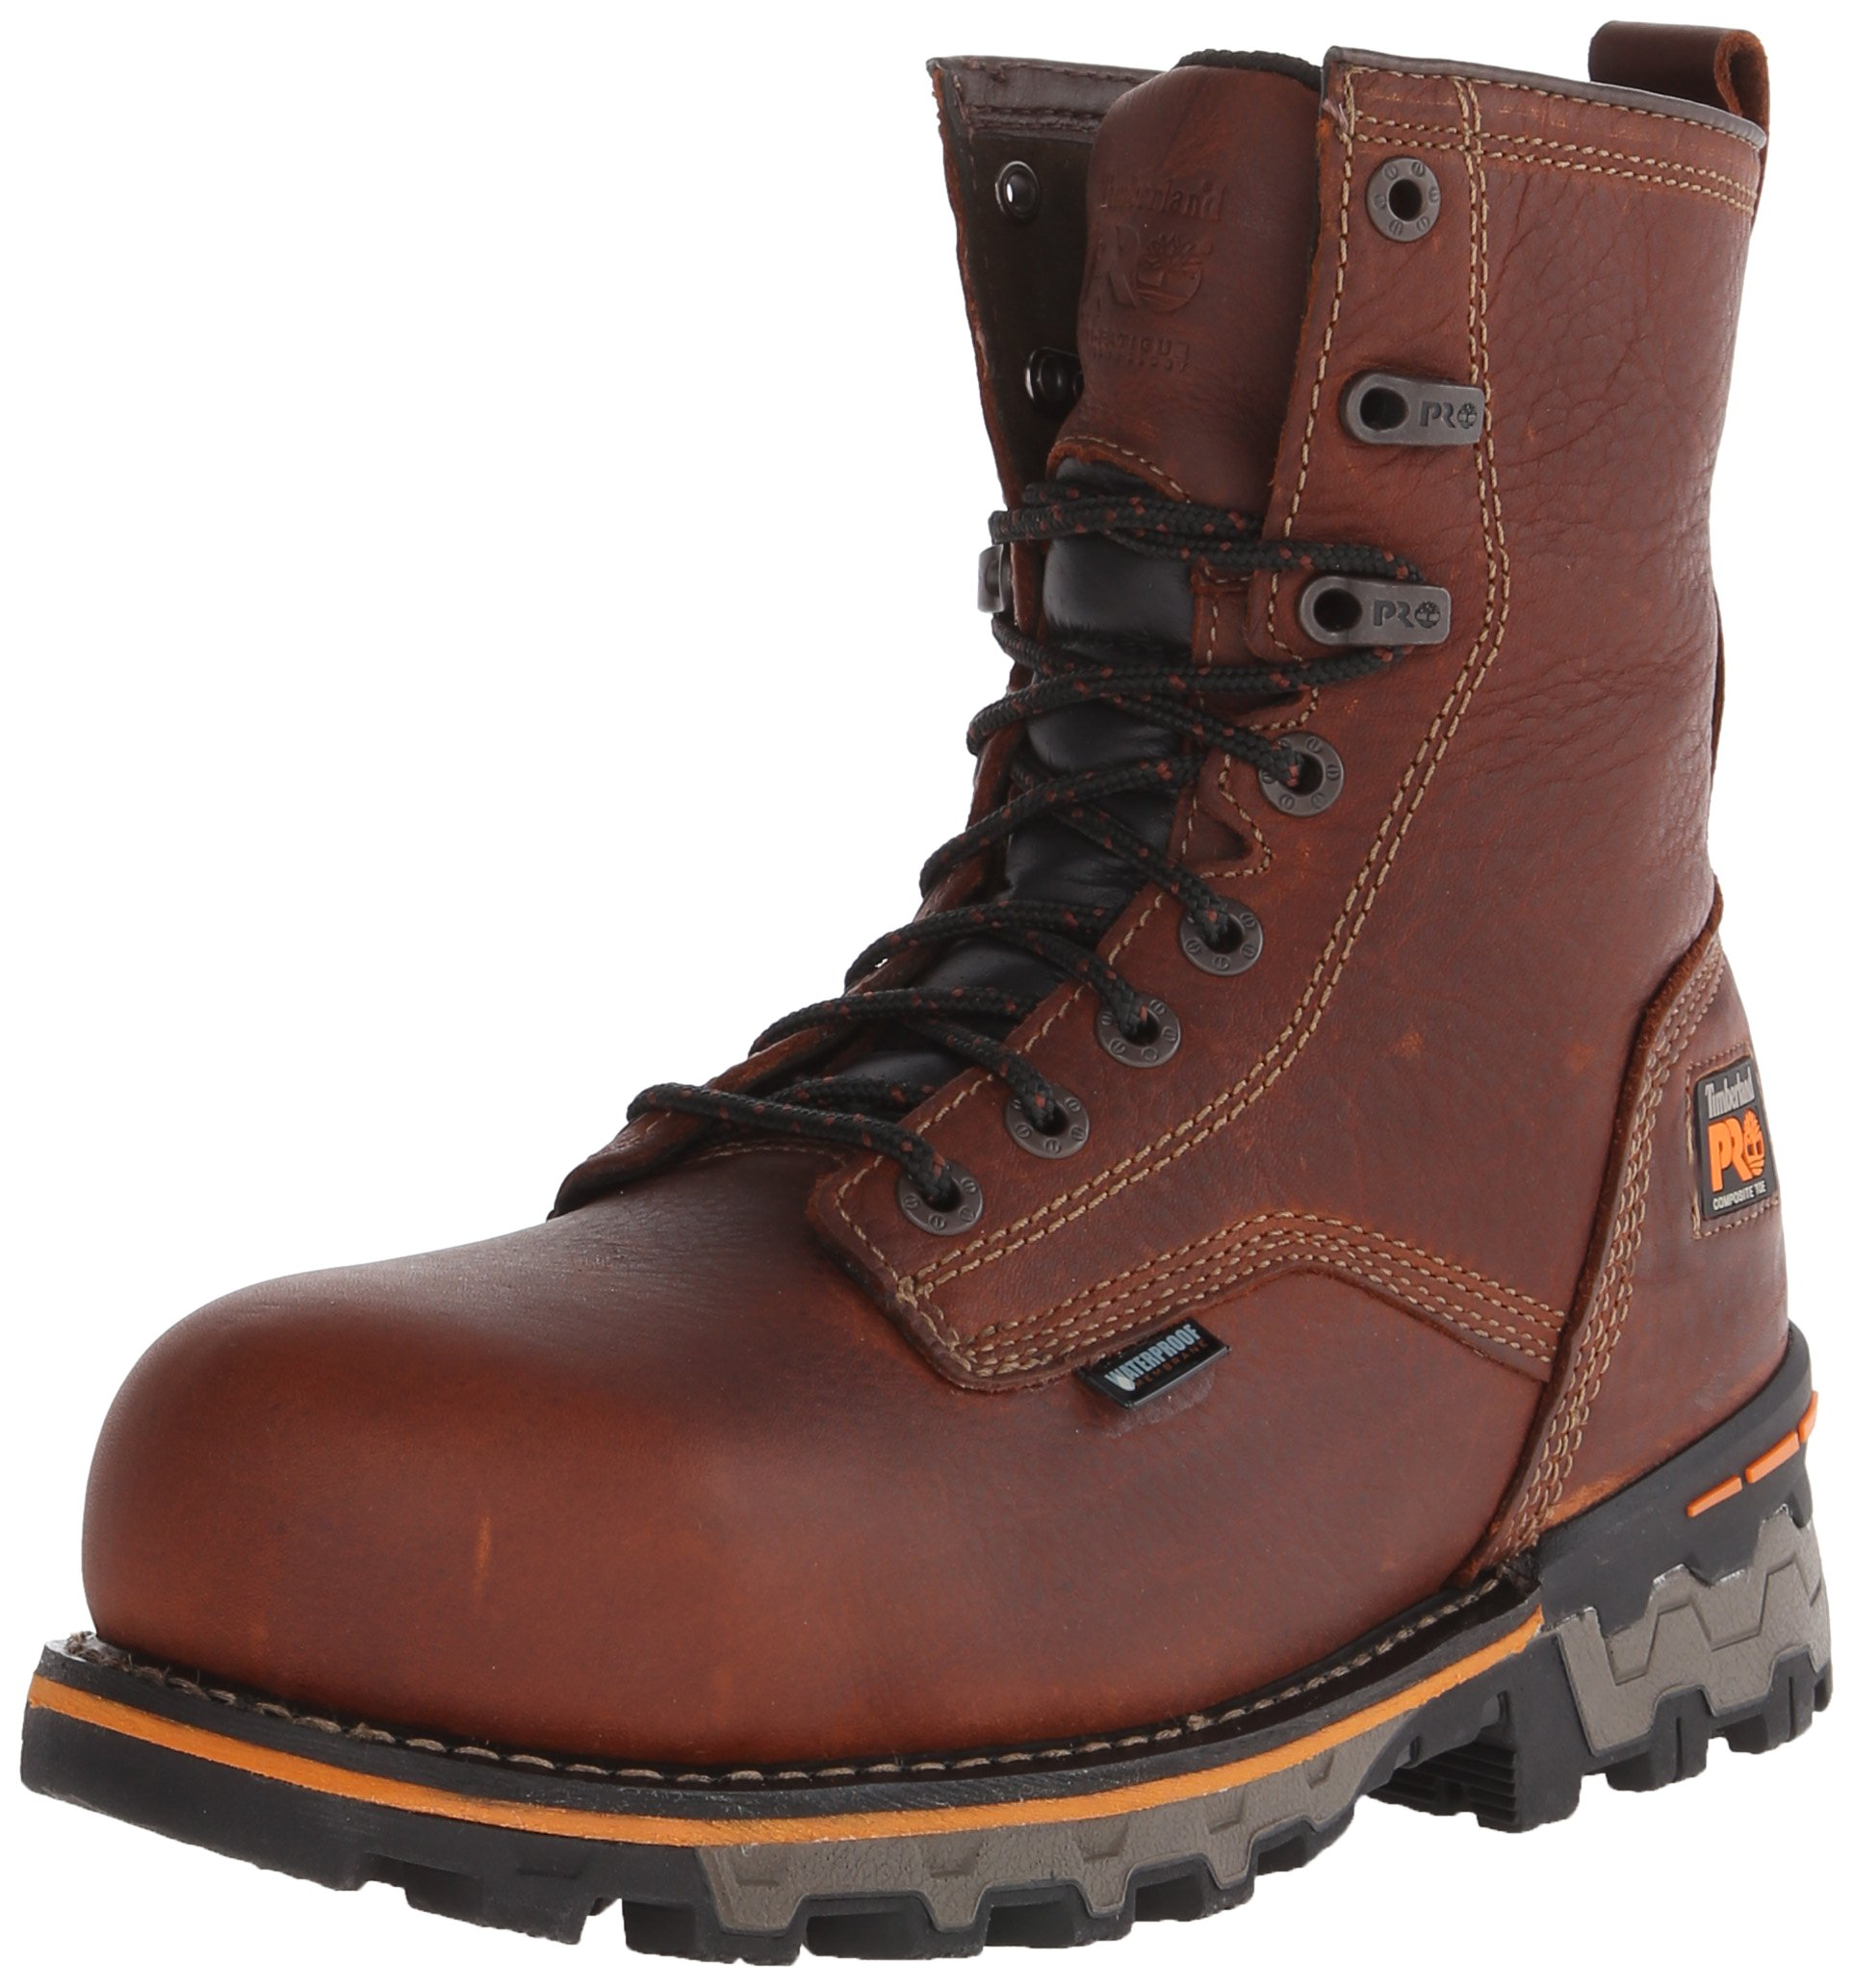 Timberland PRO Men's 8 Inch Boondock Composite Toe Waterproof Work and Hunt Boot, Brown Tumbled Leather, 15 M US